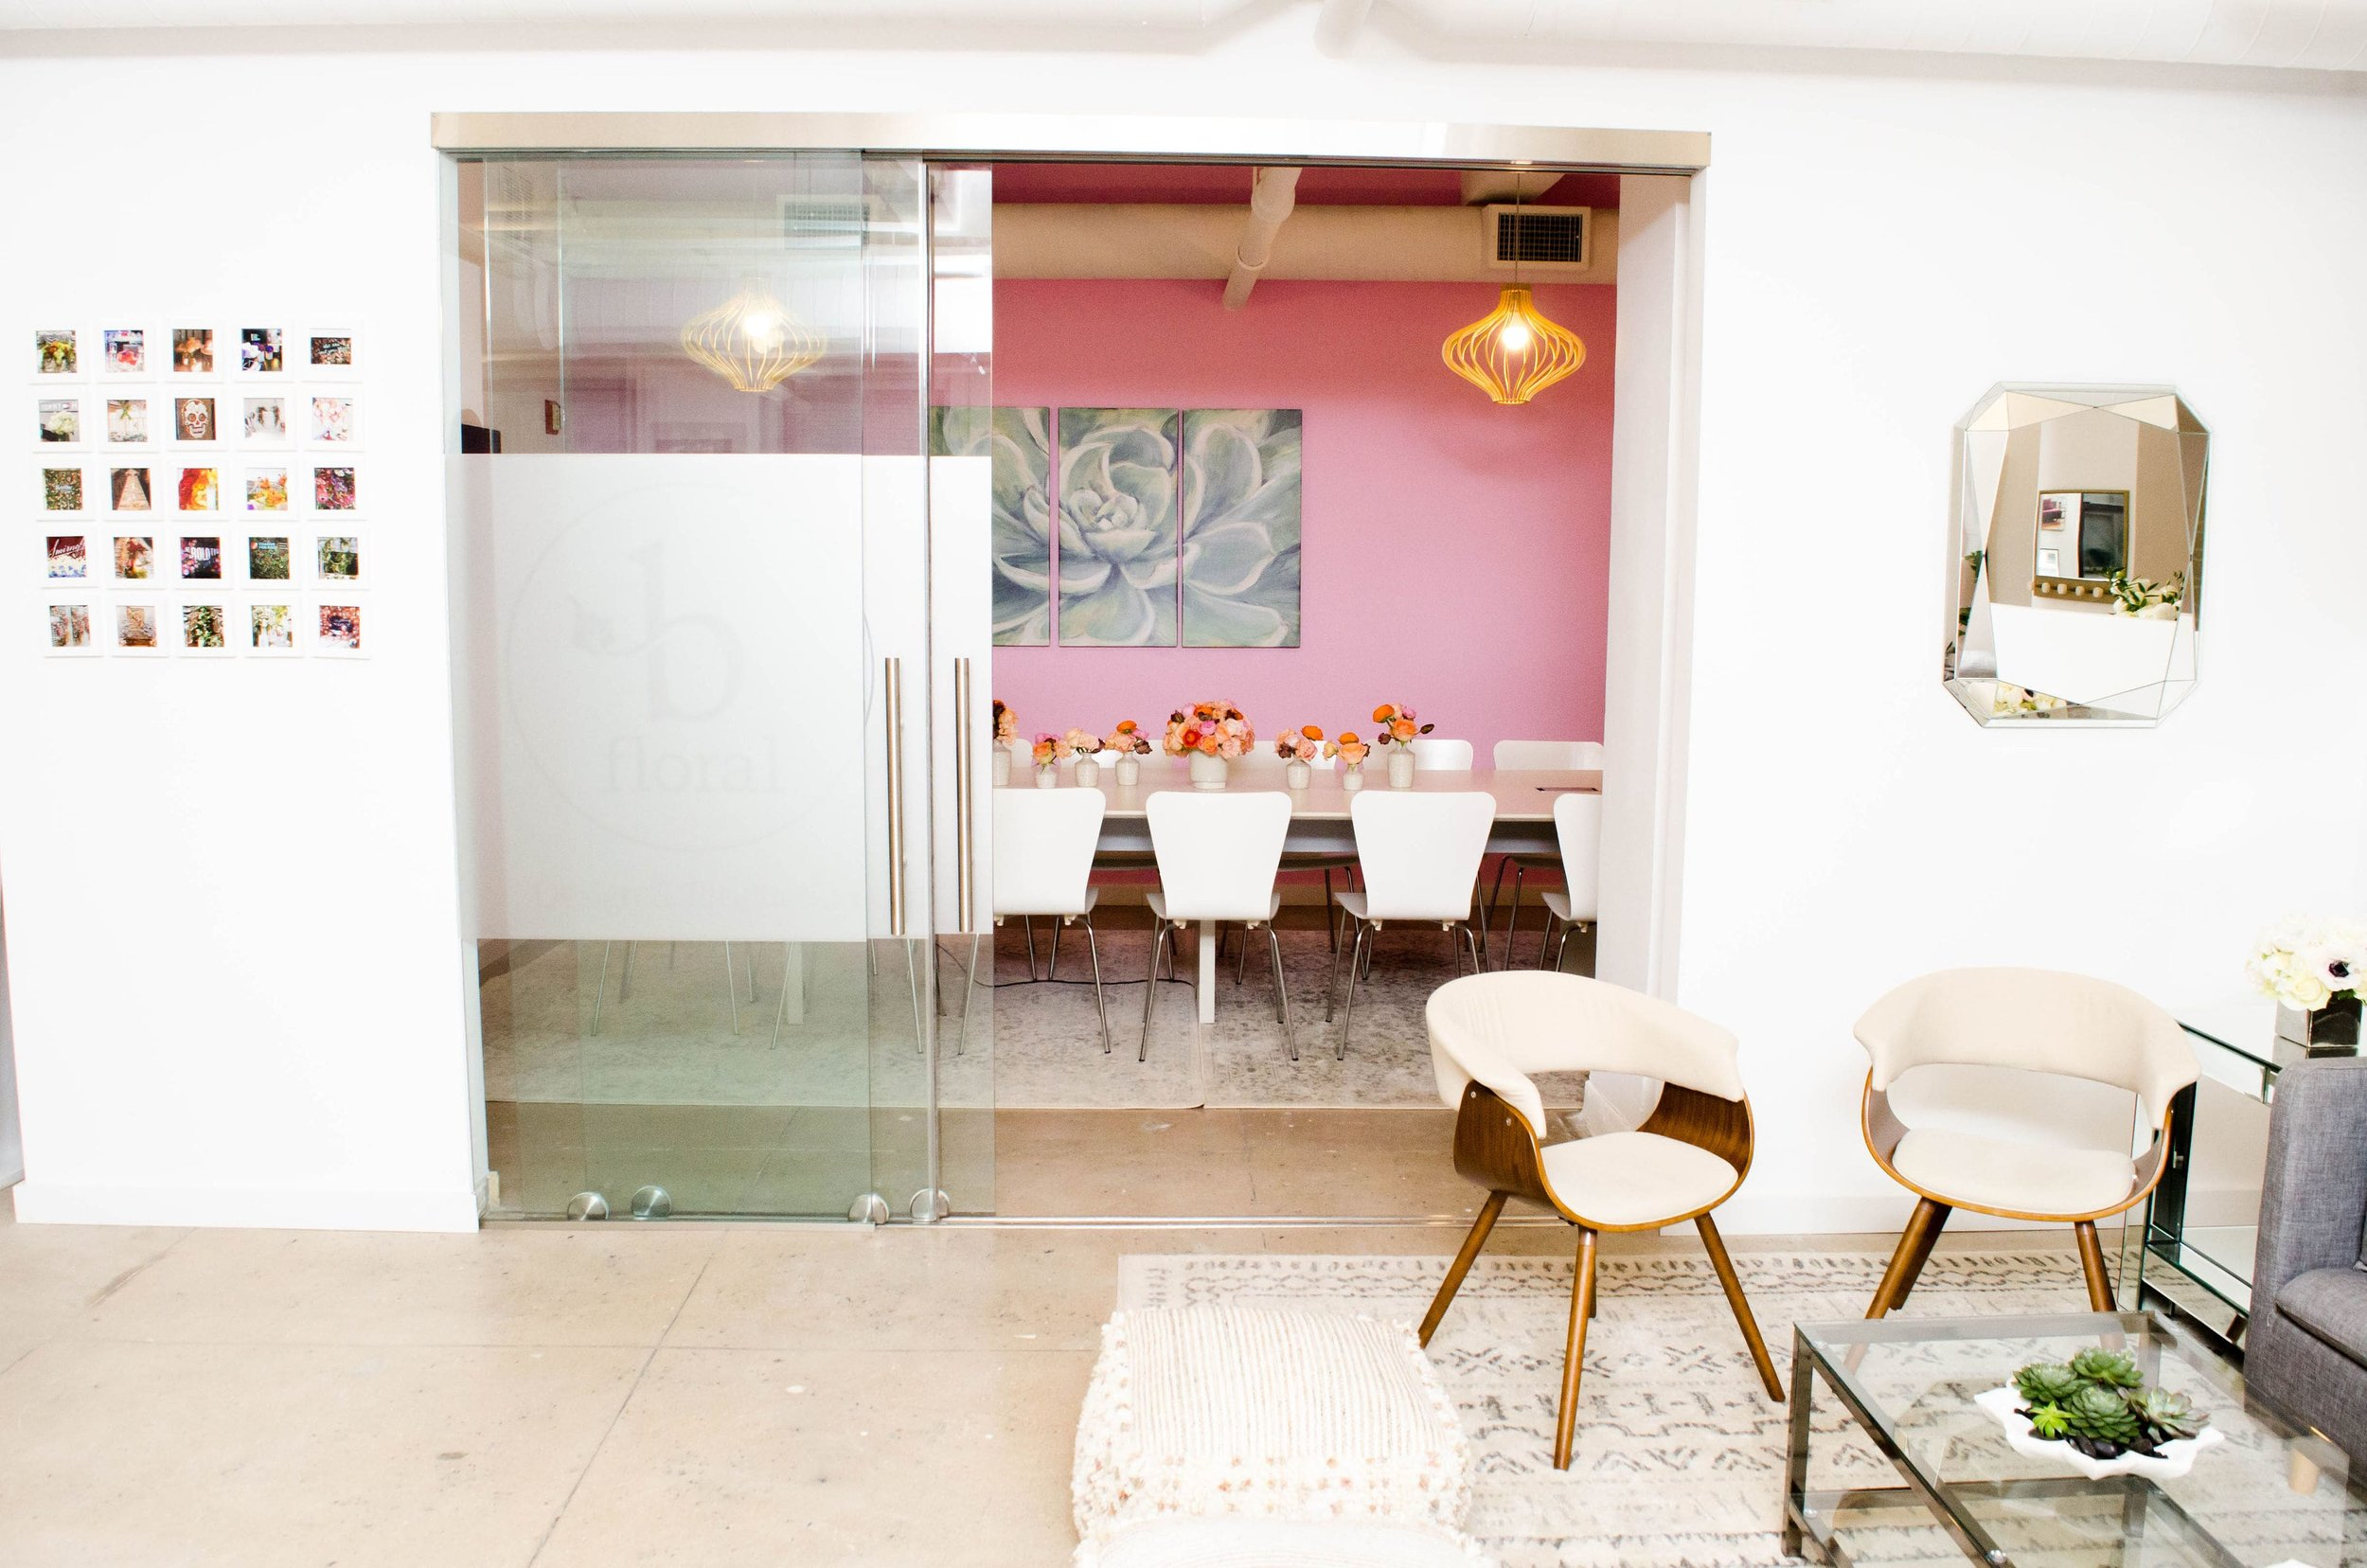 NEW - OFFICE - SPACE - MANHATTAN - COOL - OPEN - CONFERENCE ROOM - B FLORAL